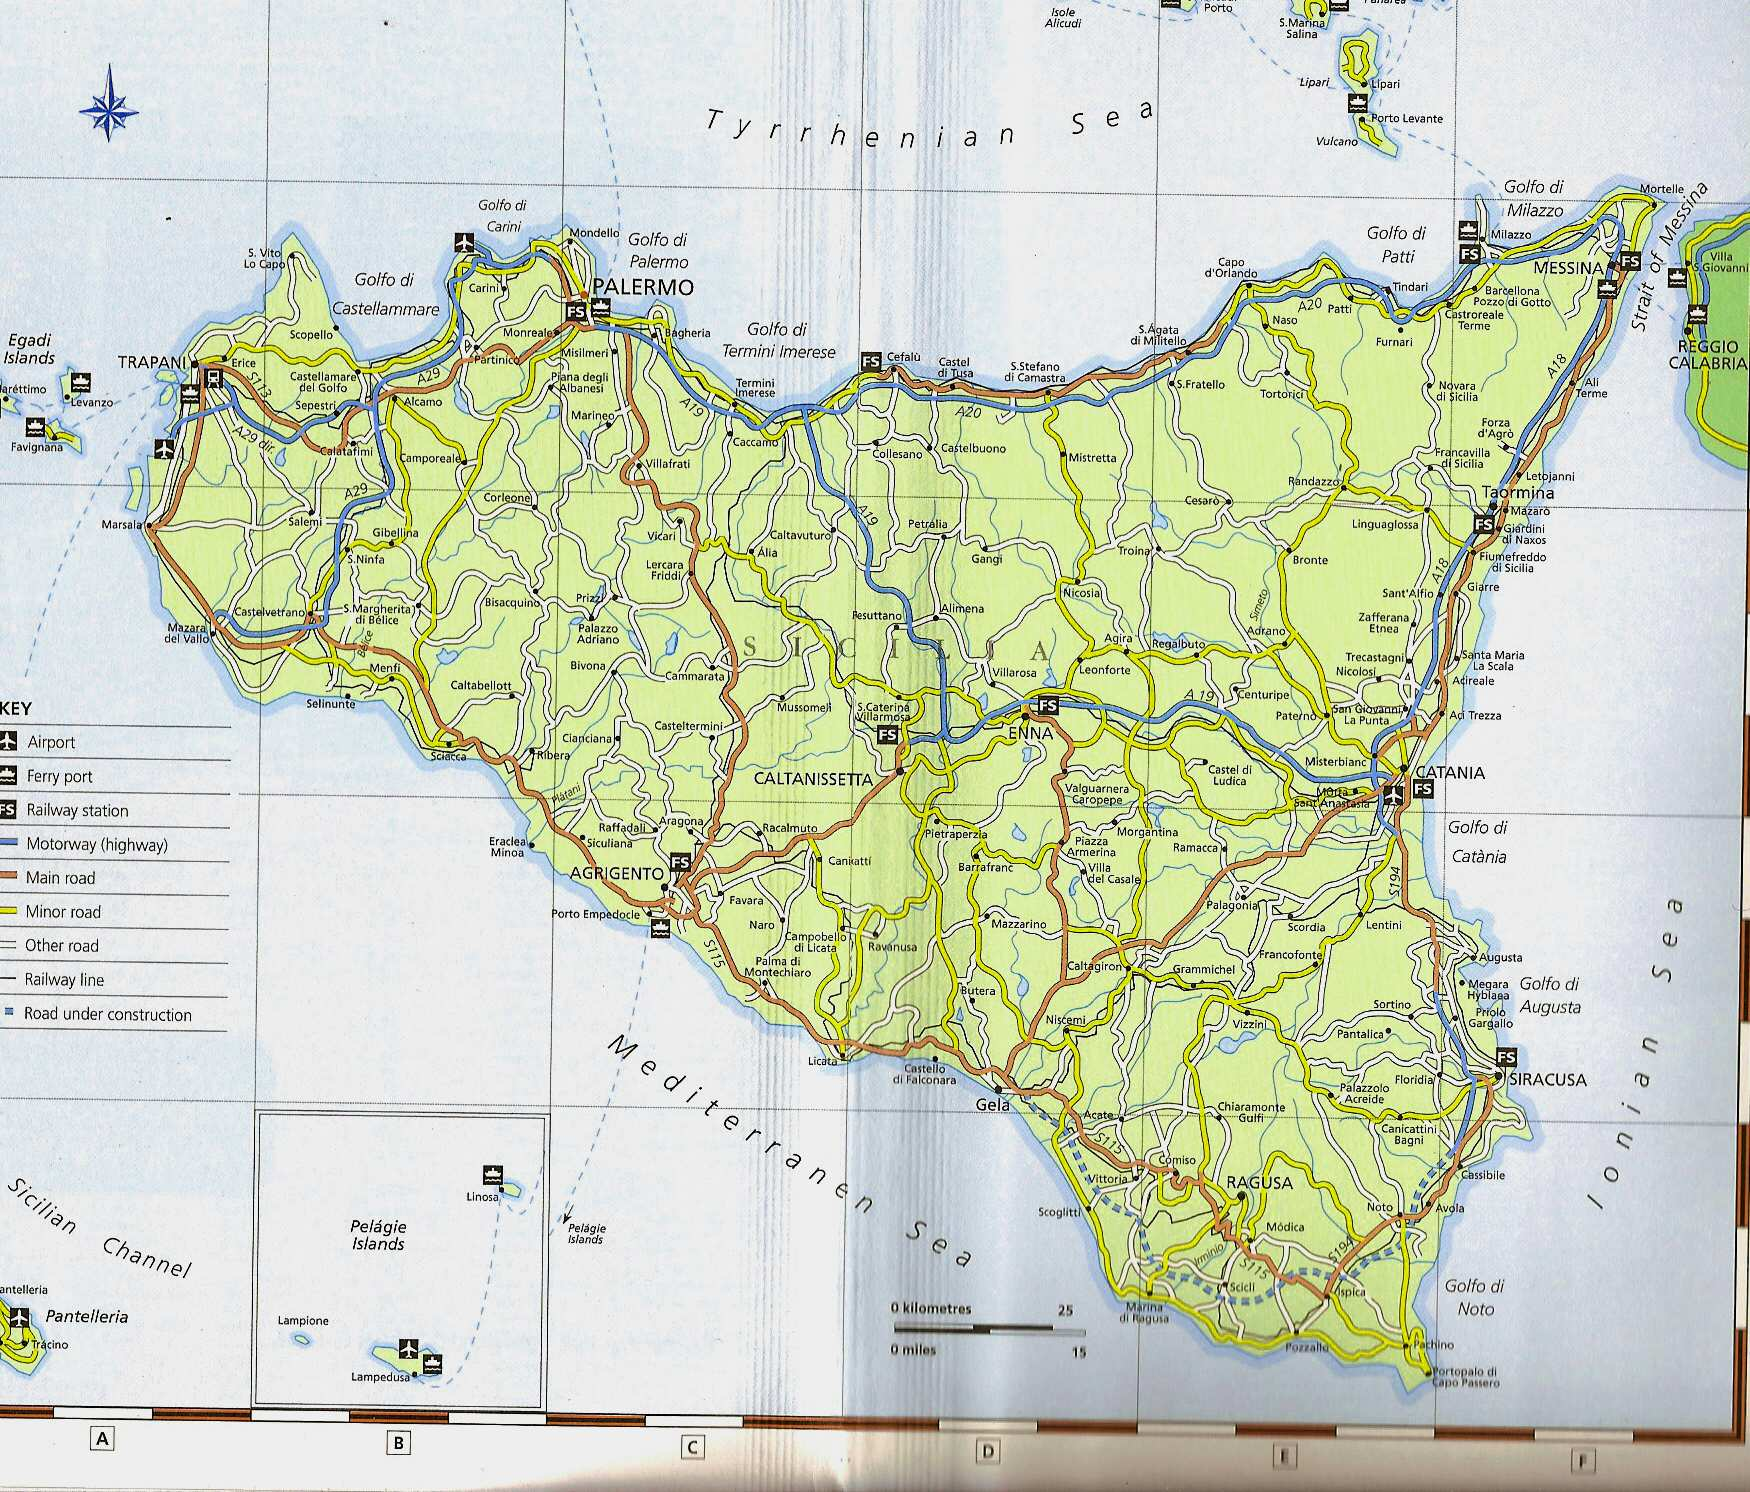 Cities In Sicily Italy Map.Large Sicily Maps For Free Download And Print High Resolution And